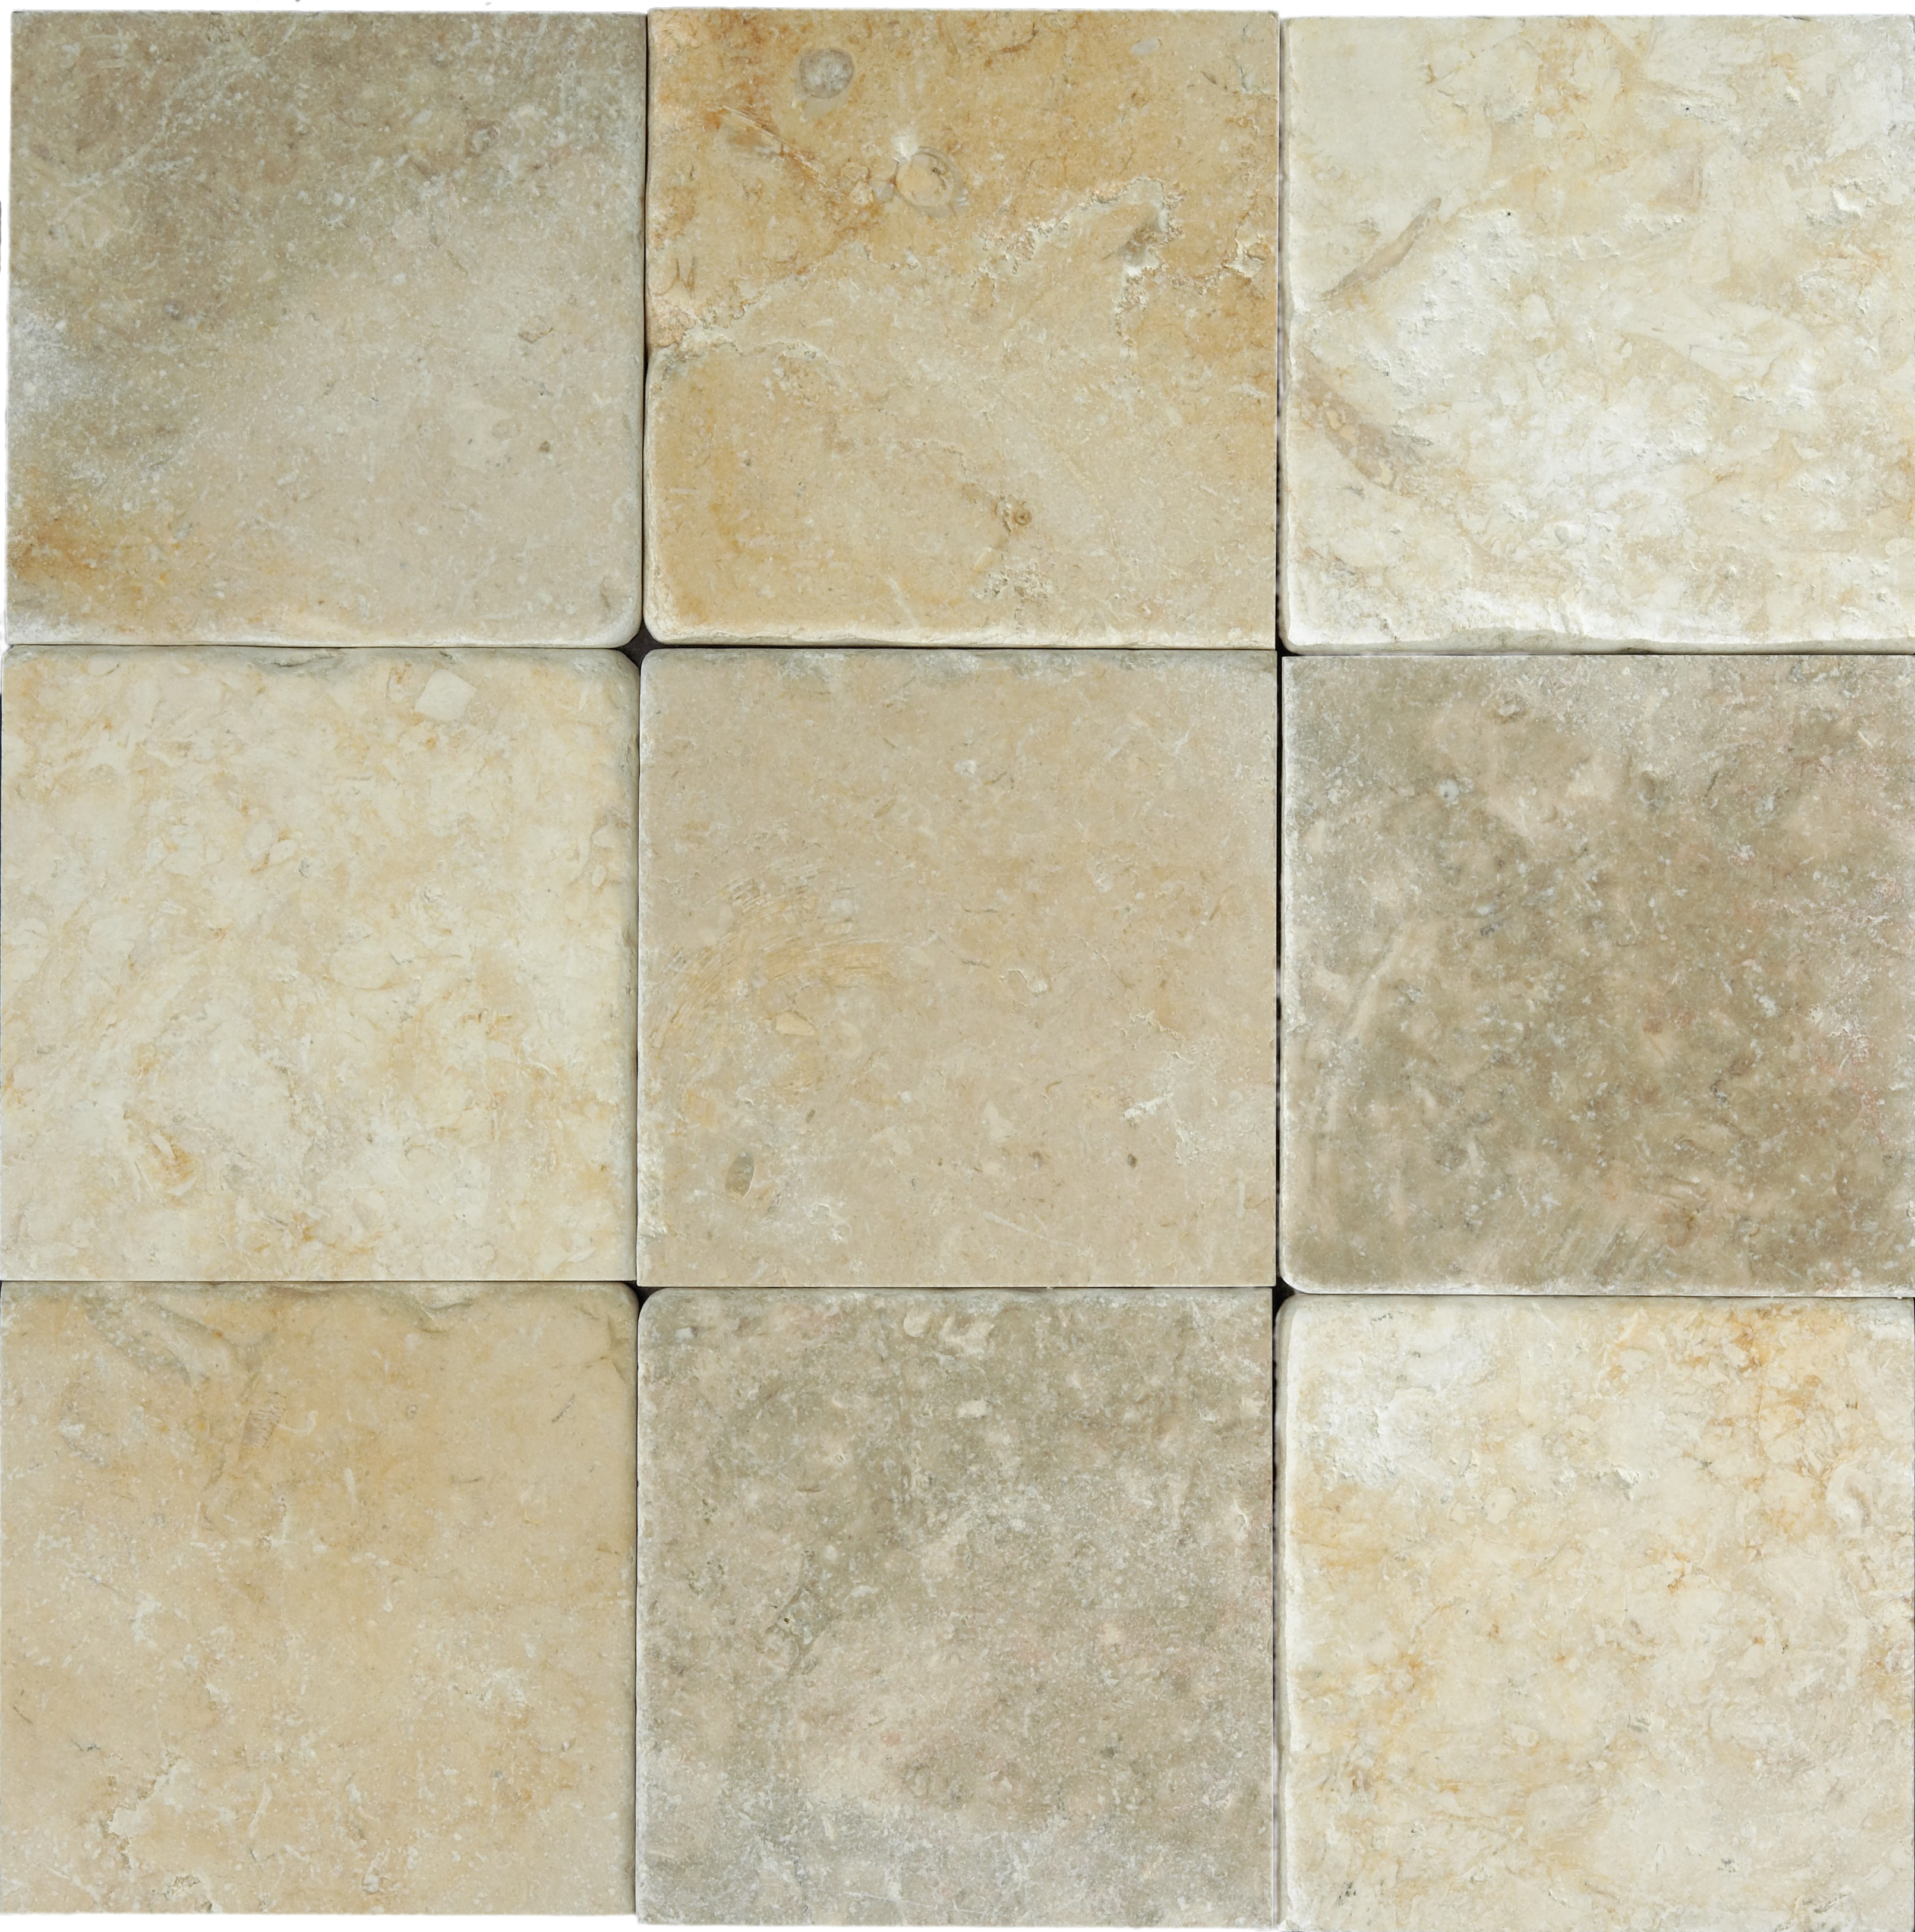 Argos Petraslate Tile Stone Is A Wholesale Supplier Of Quality